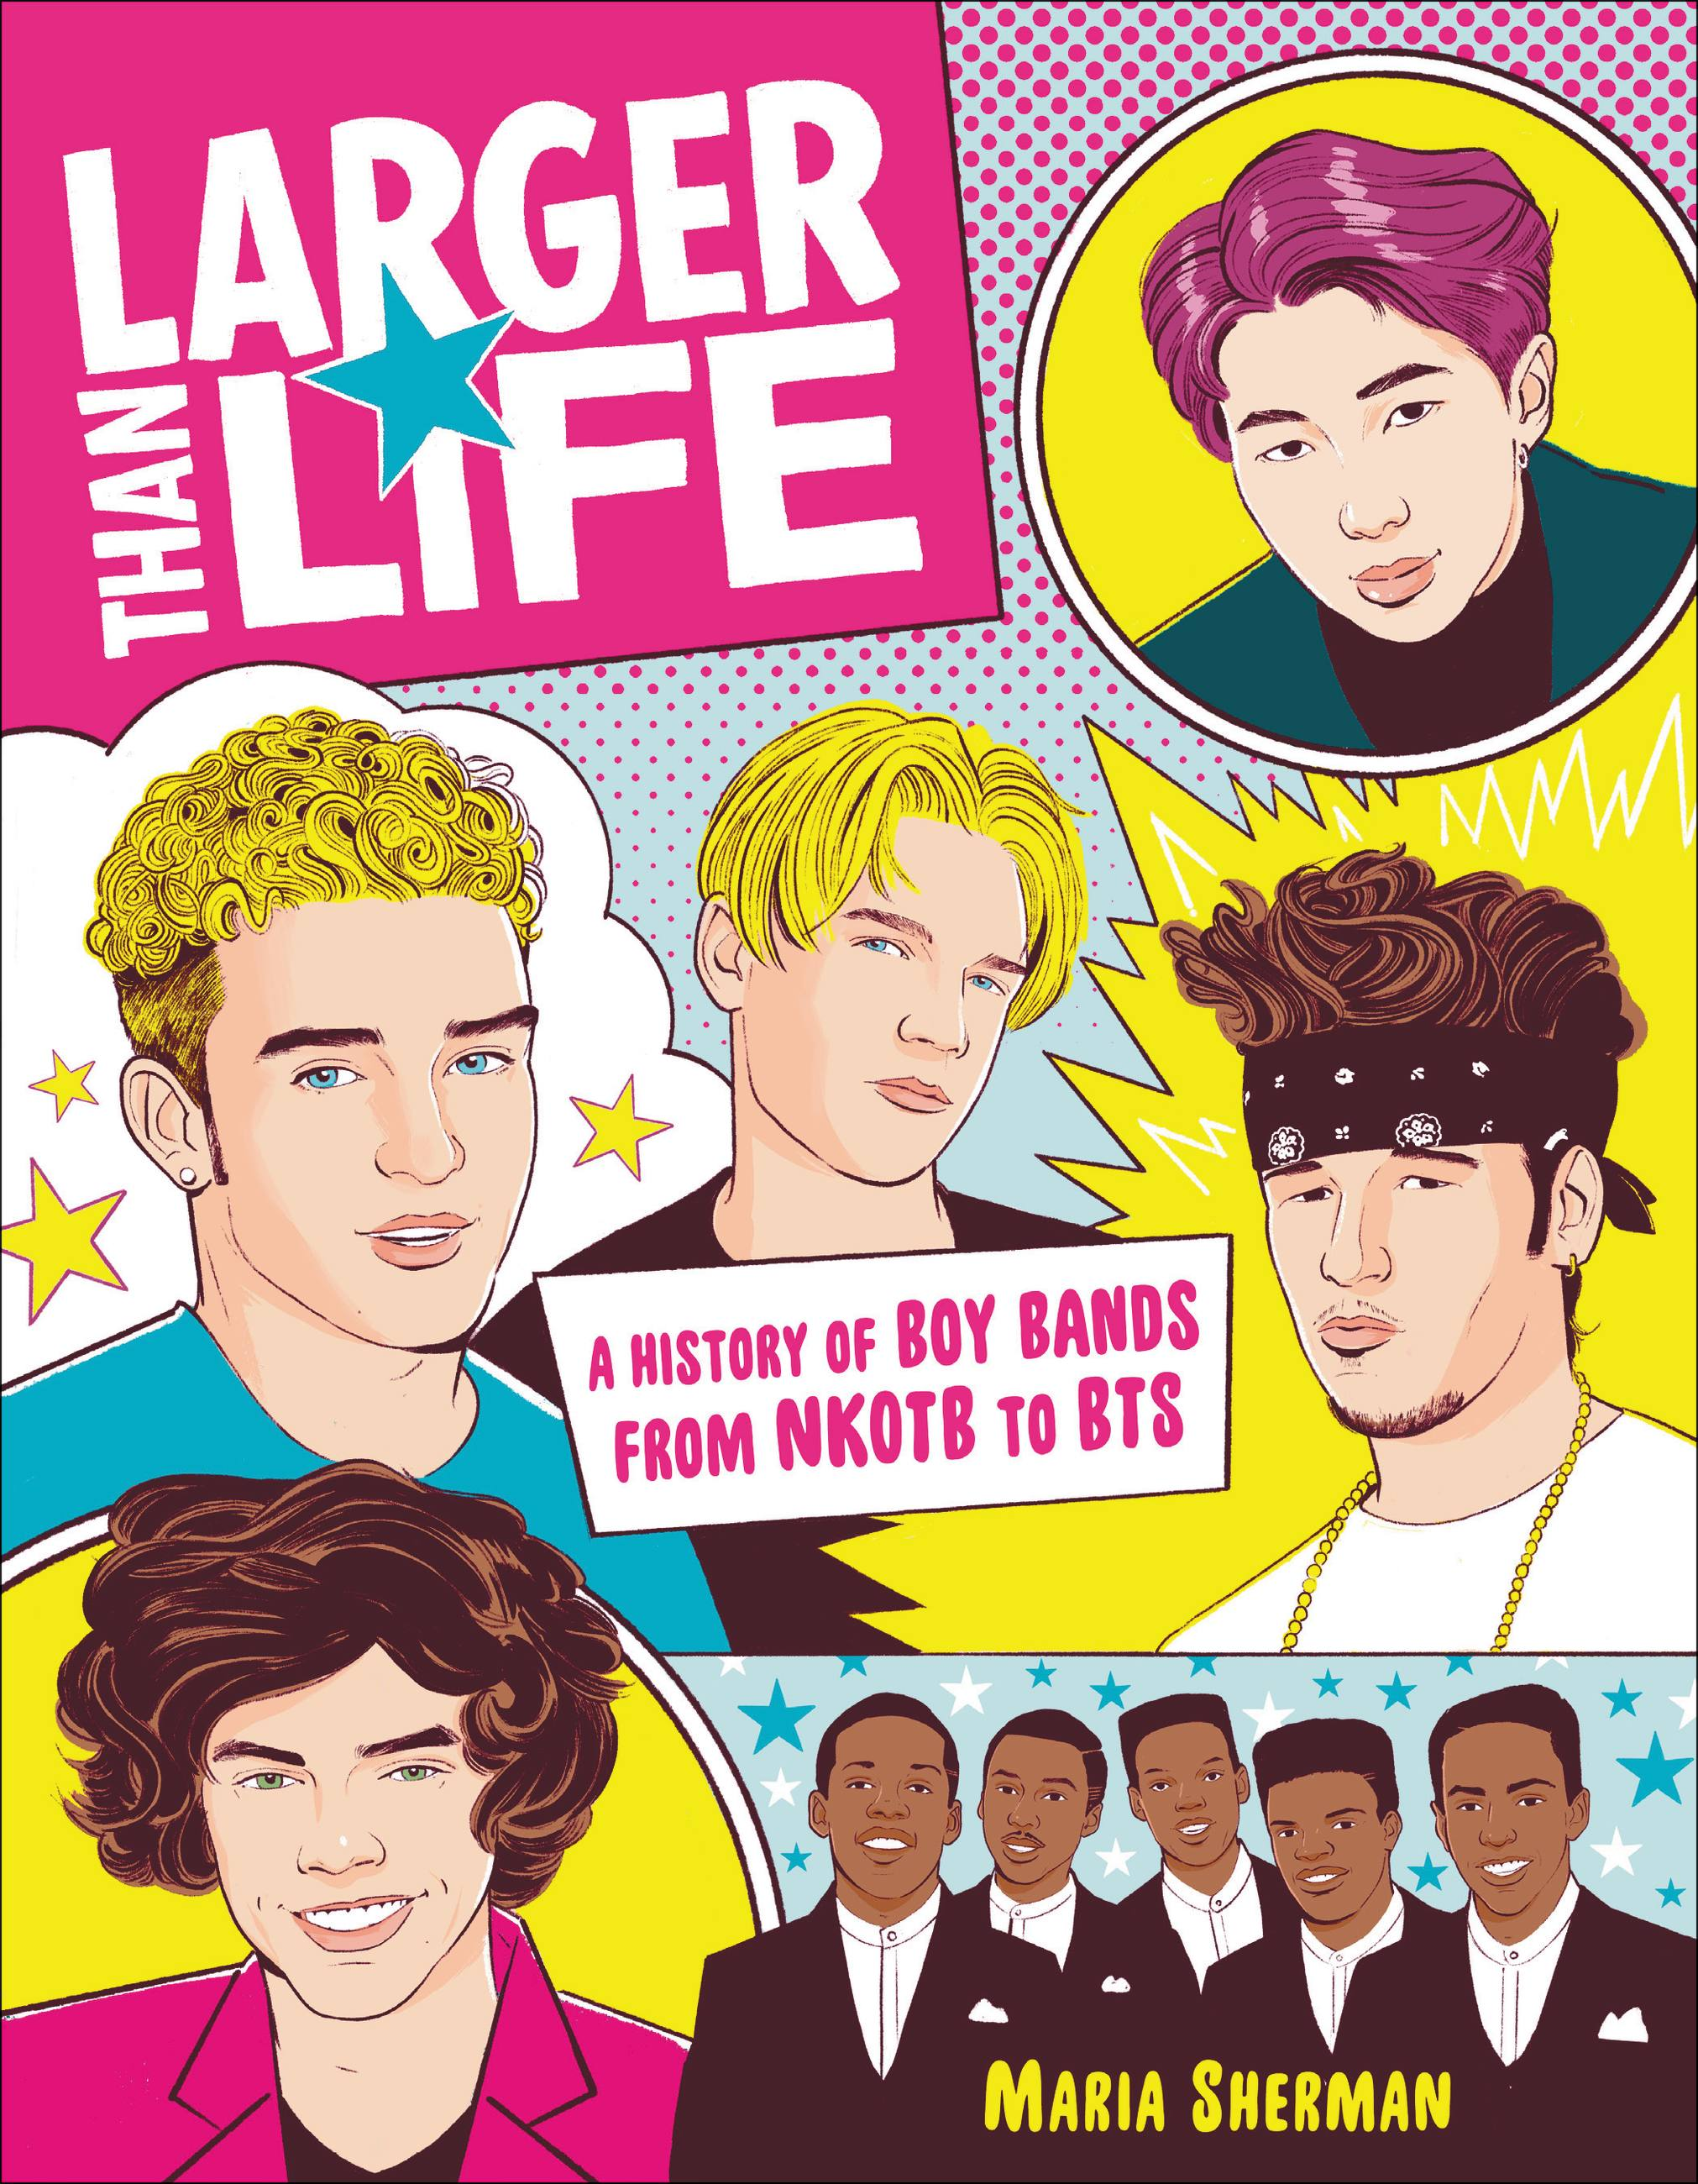 Larger than life : a history of boy bands from NKOTB to BTS